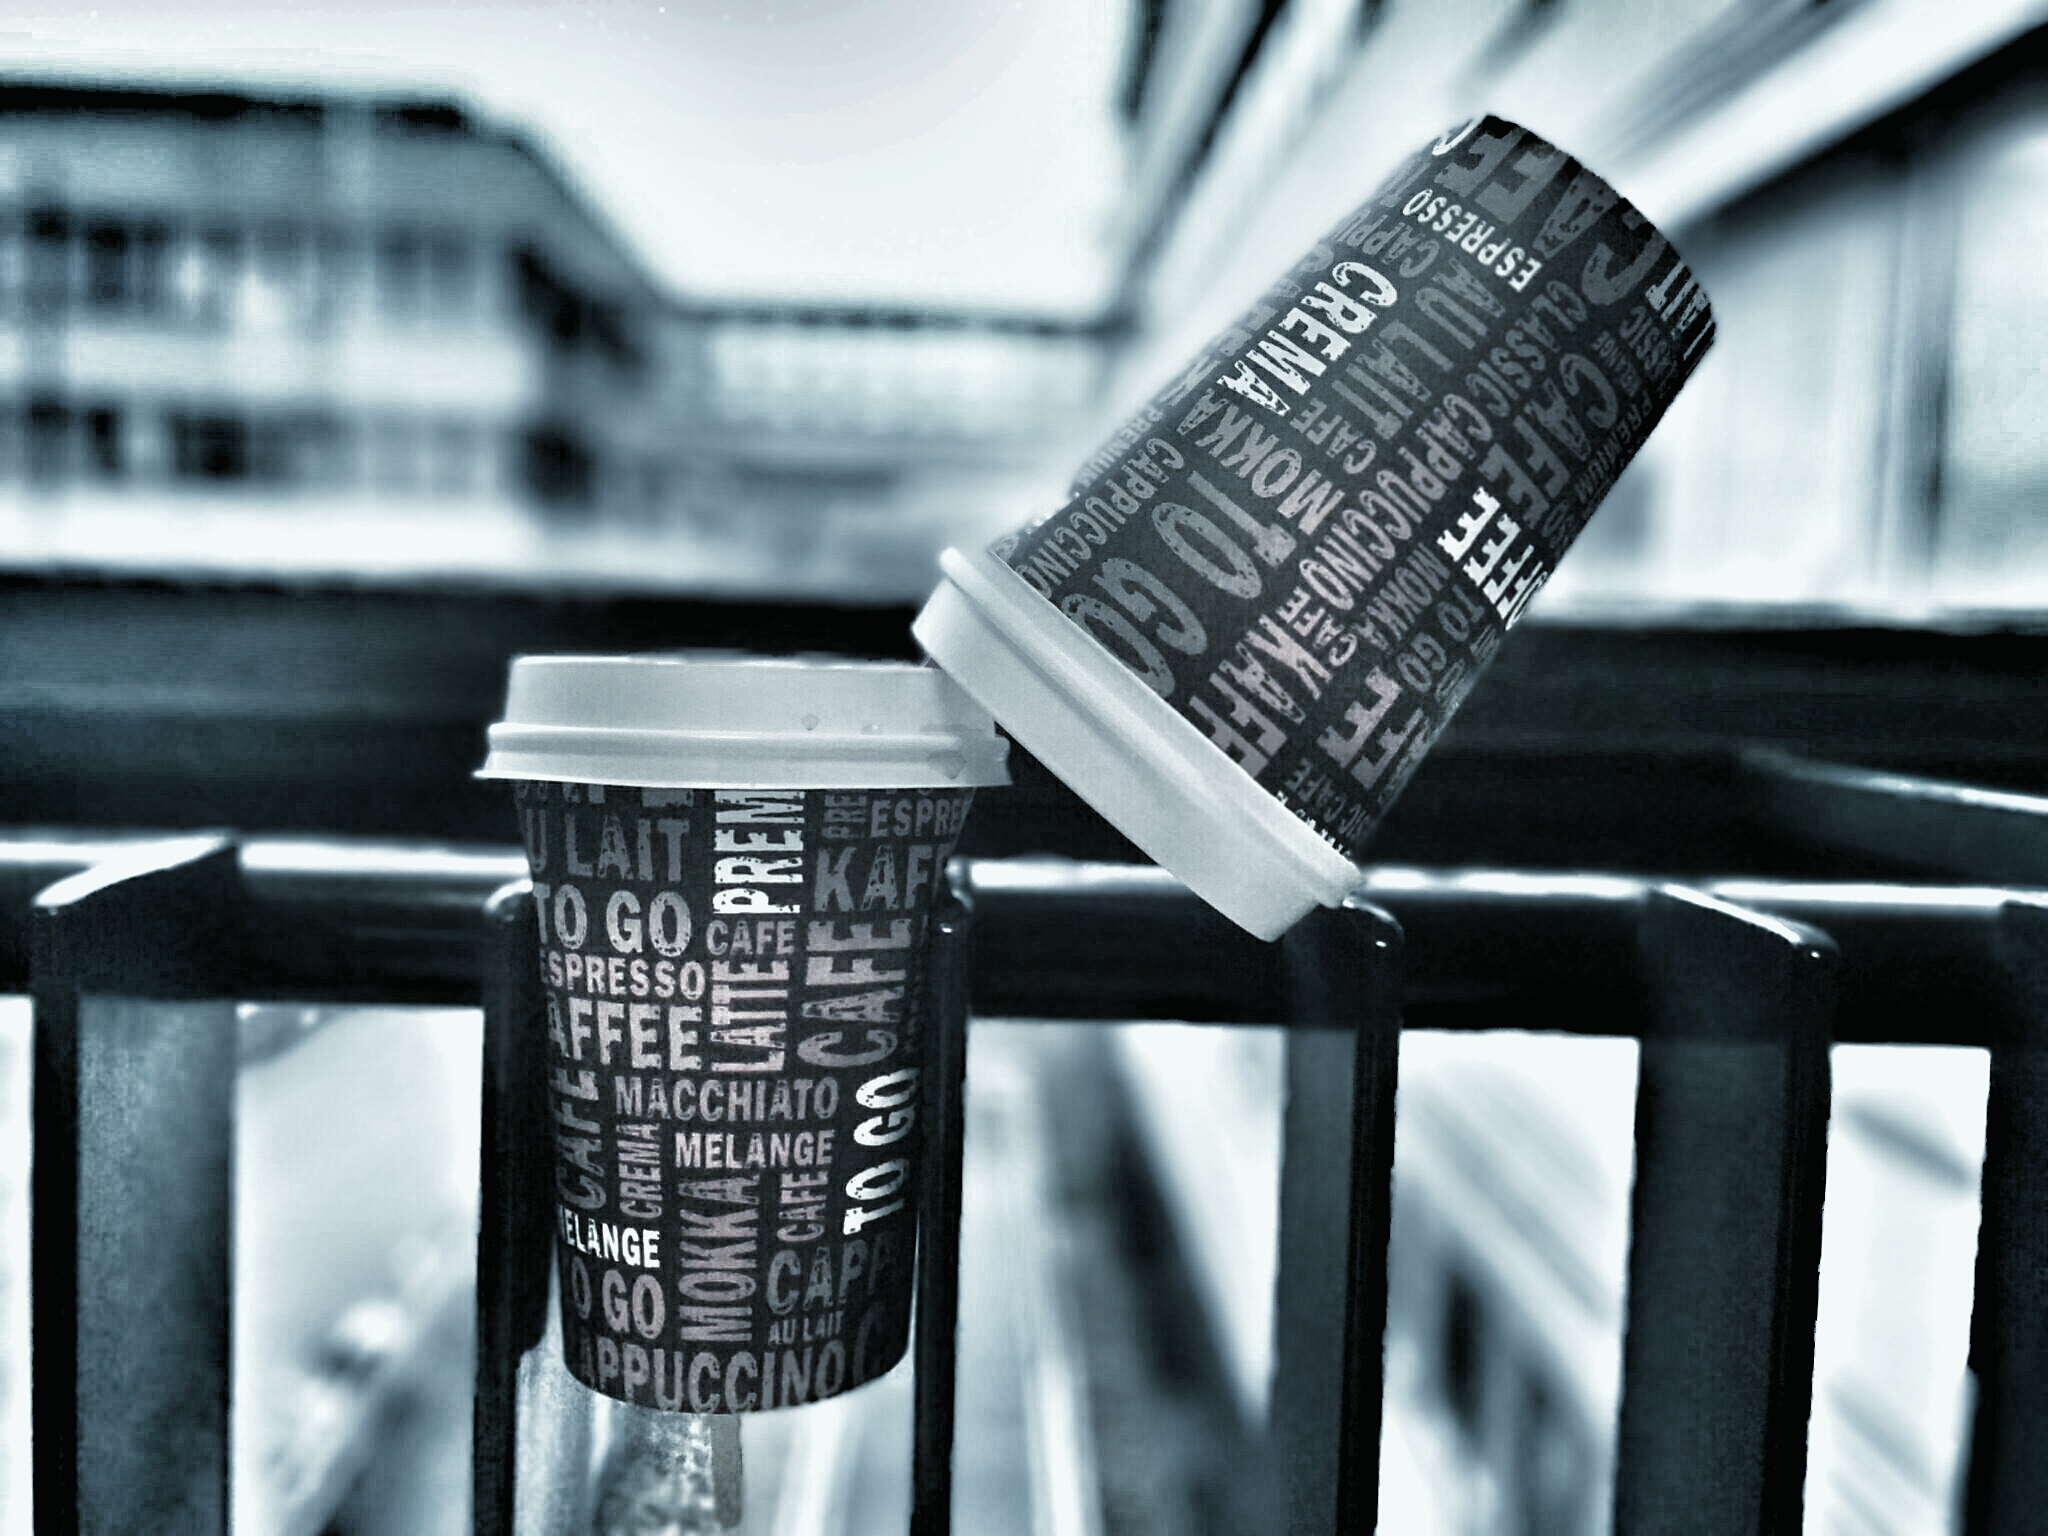 Image of two paper coffee mugs. One of them represents a summit and the other one appears to be climbing in a crevasse, trying to get up.